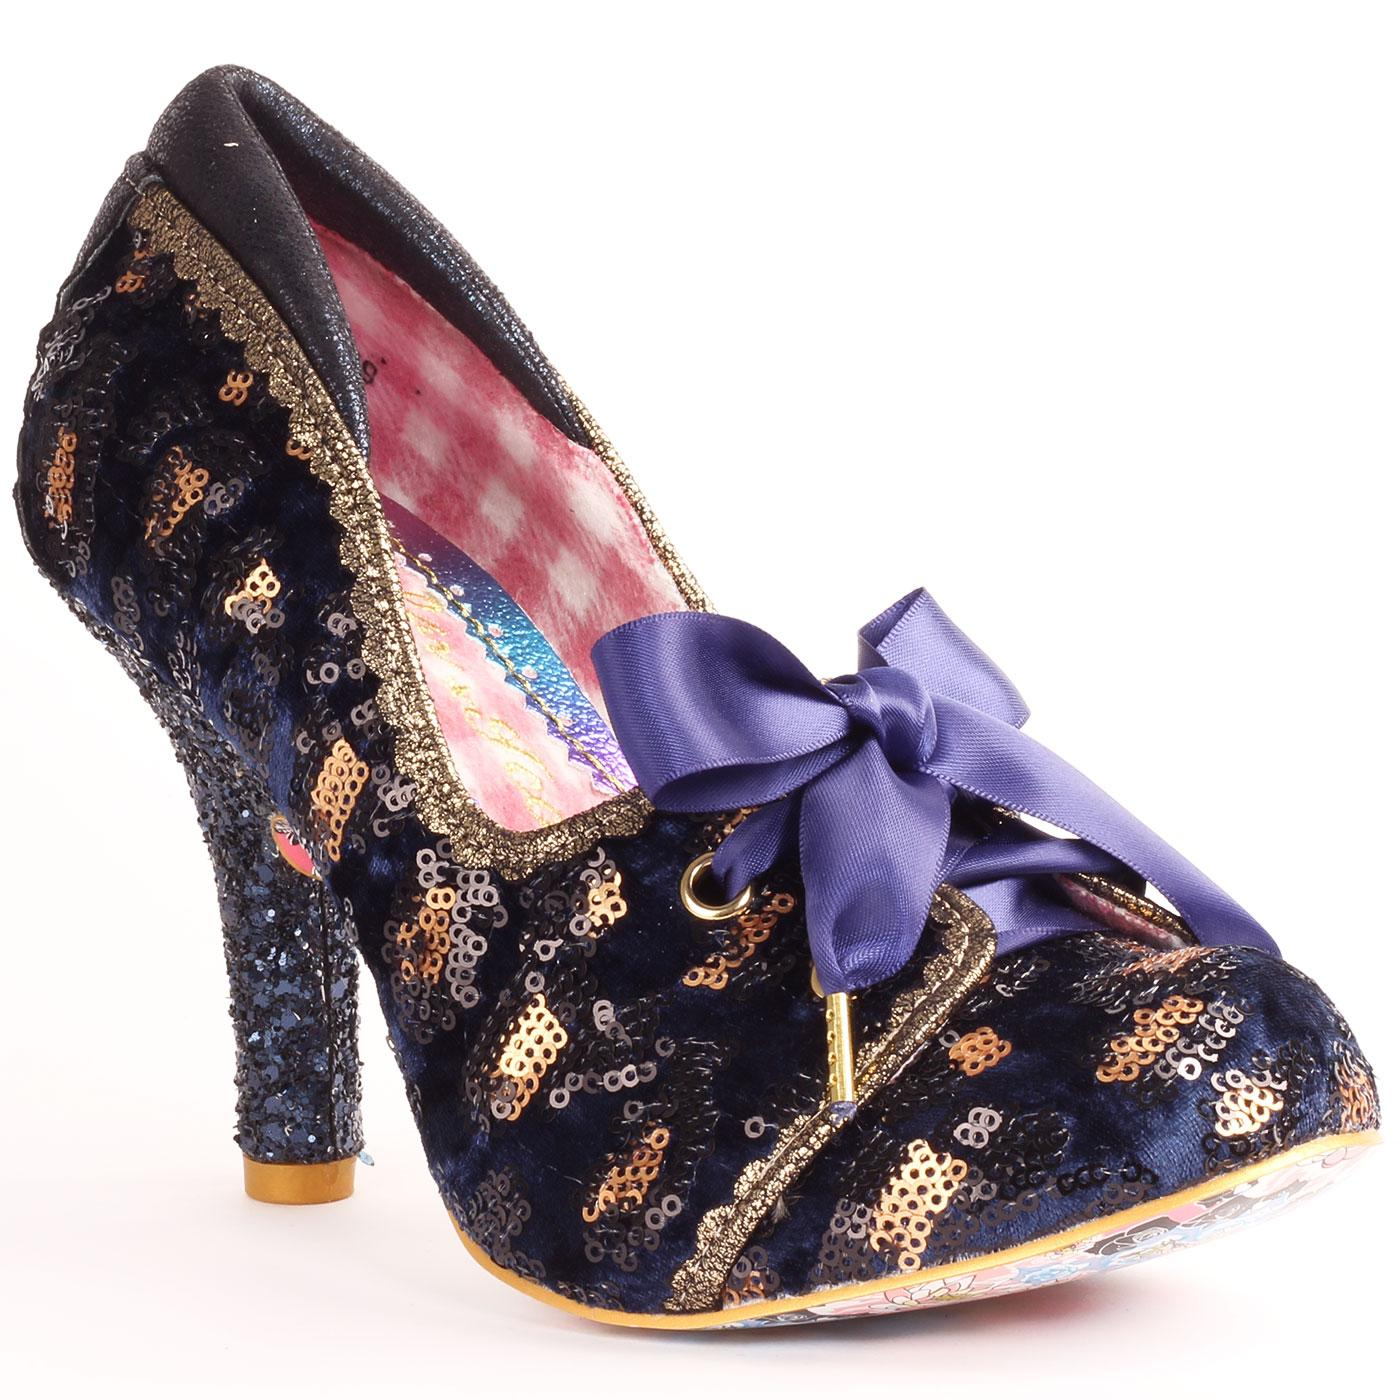 Chips & Gravy IRREGULAR CHOICE Sequin Lace Up Heel